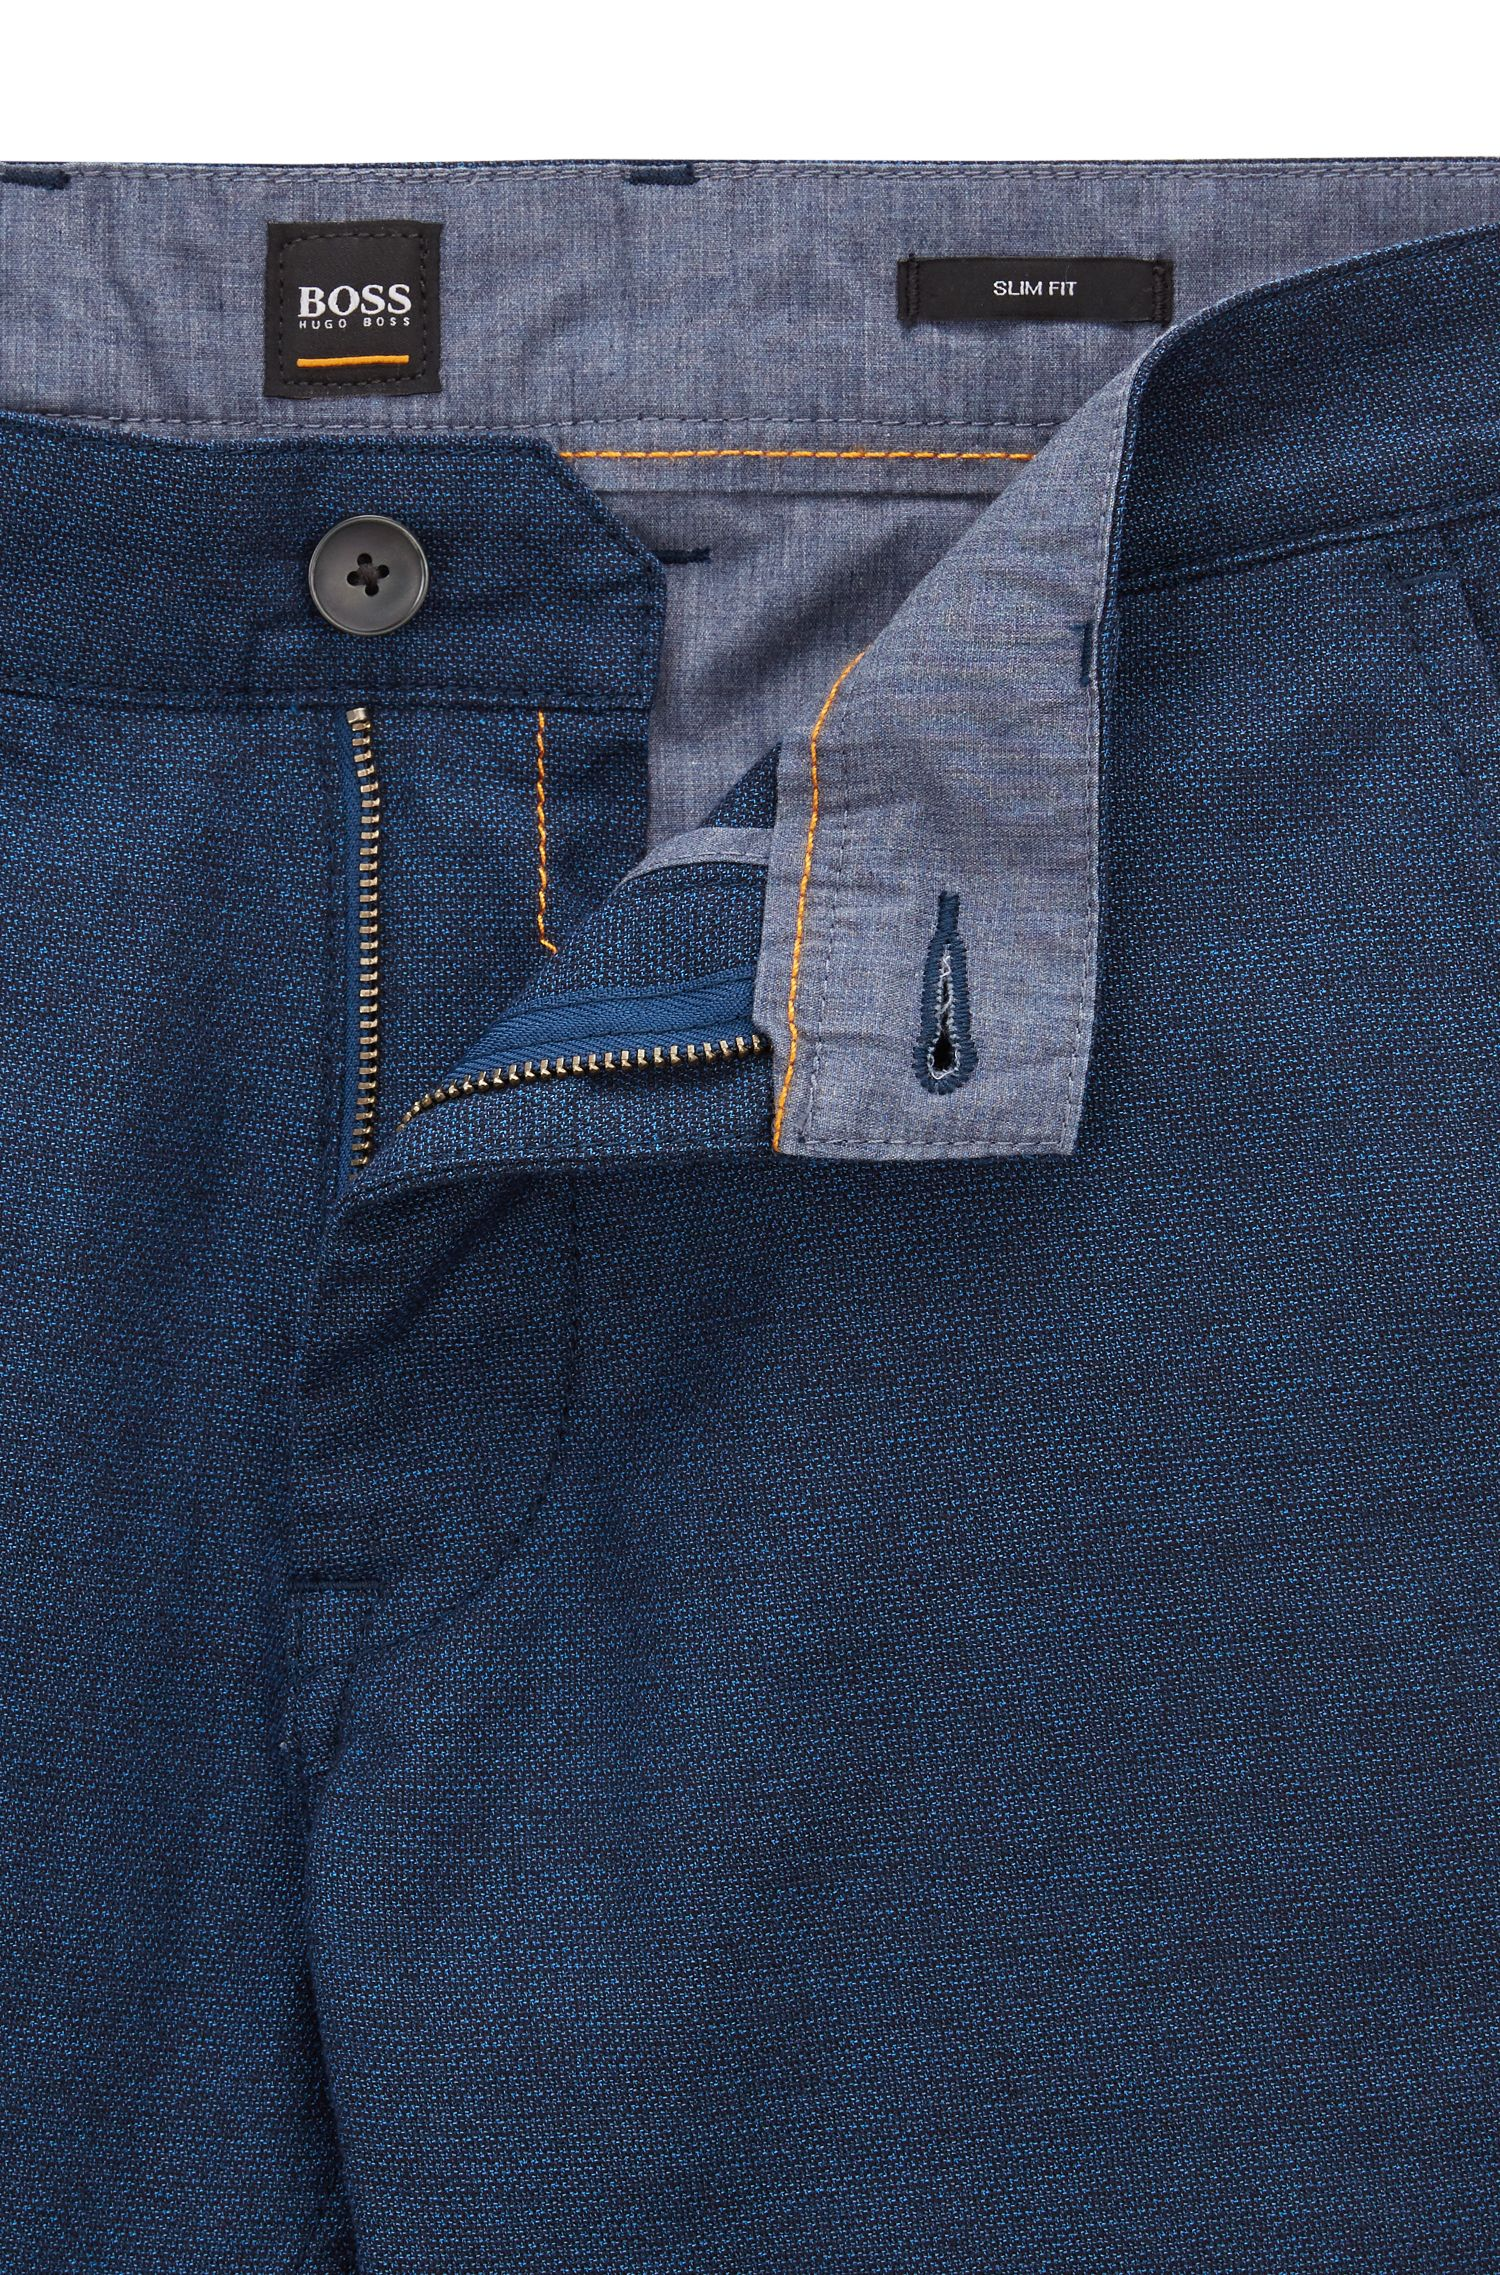 Slim-fit trousers in overdyed melange stretch cotton